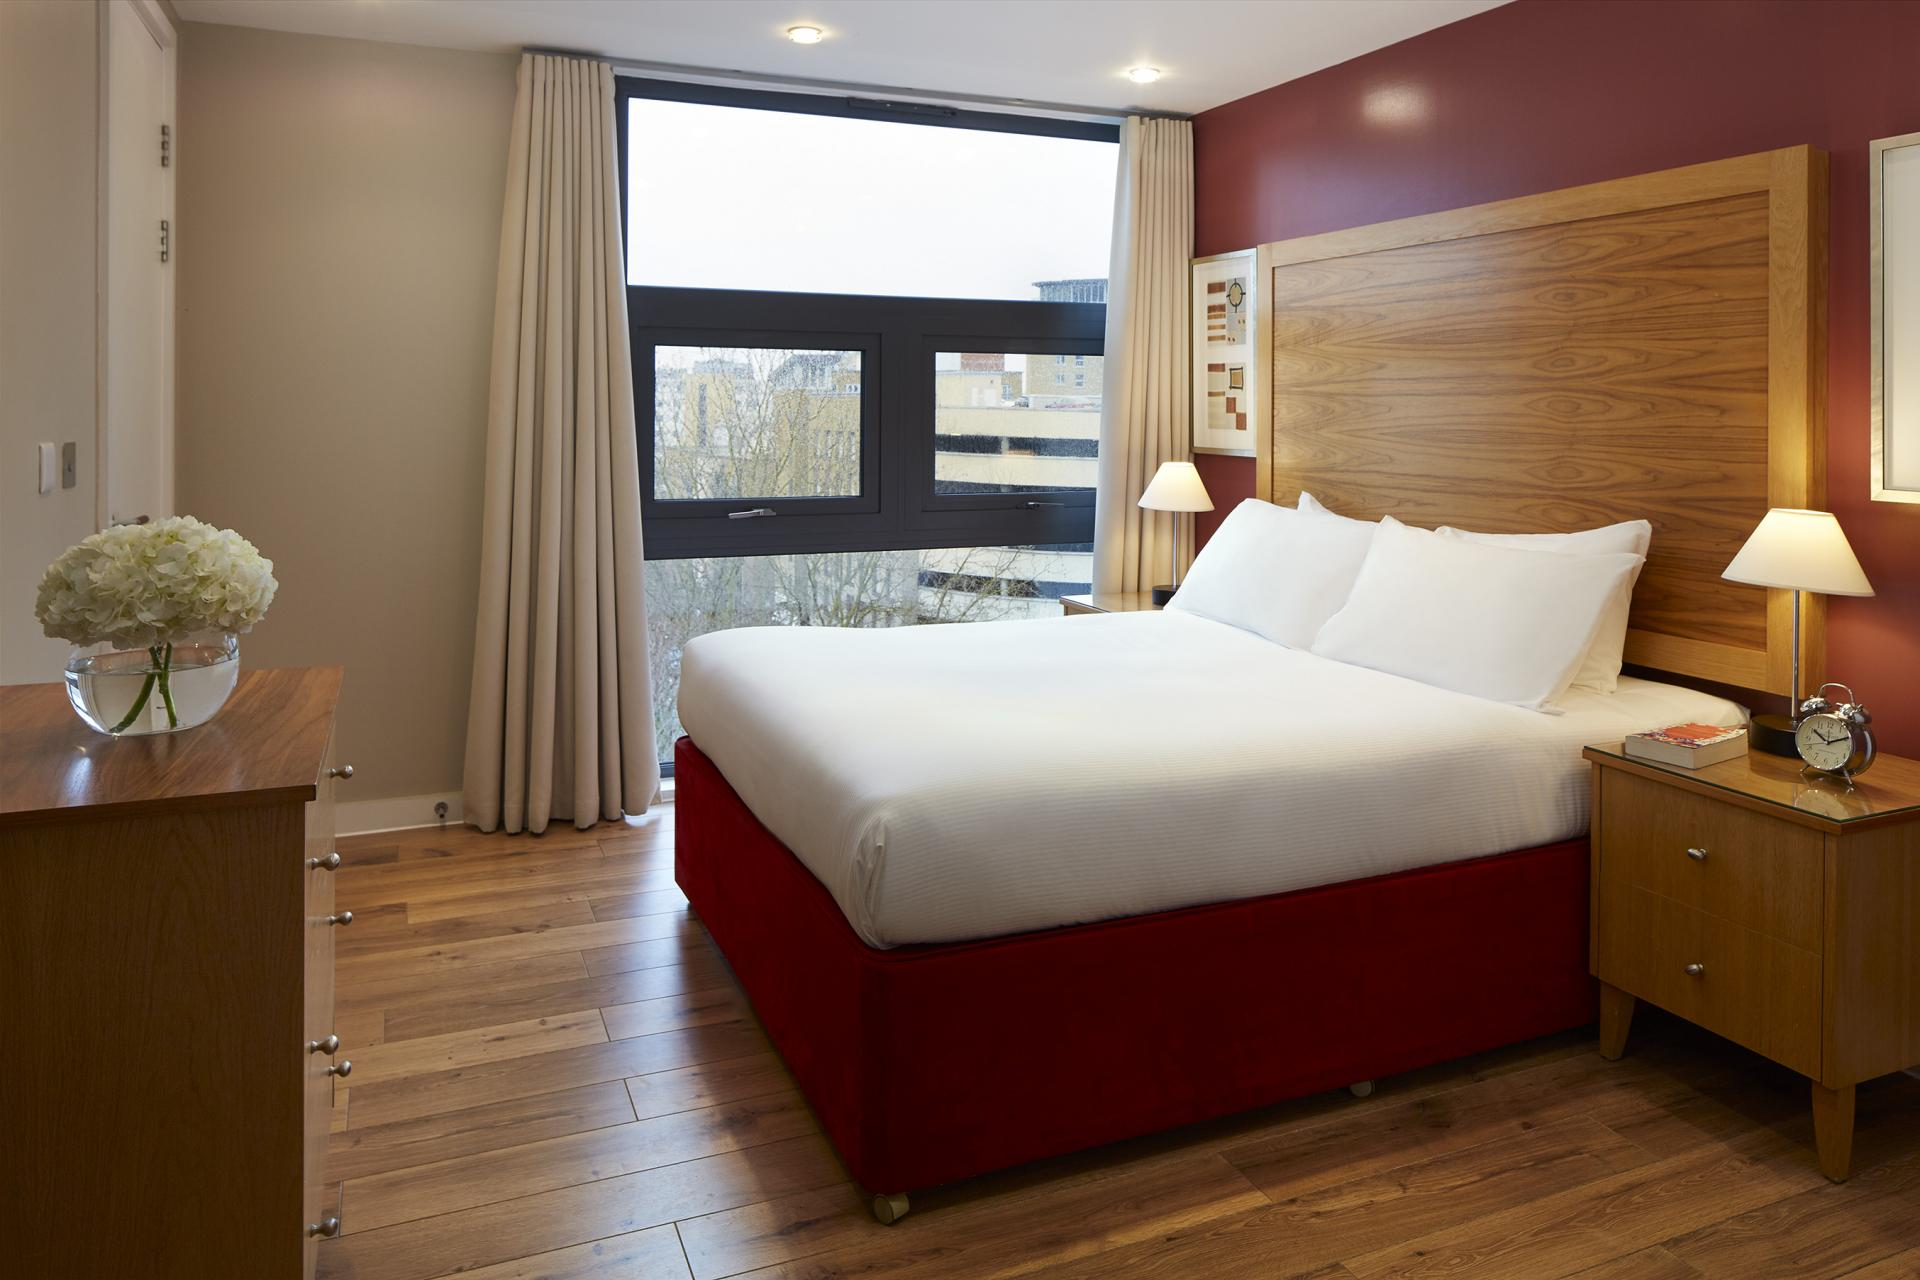 Bedroom at Marlin Canary Wharf Apartments, Canary Wharf, London - Citybase Apartments